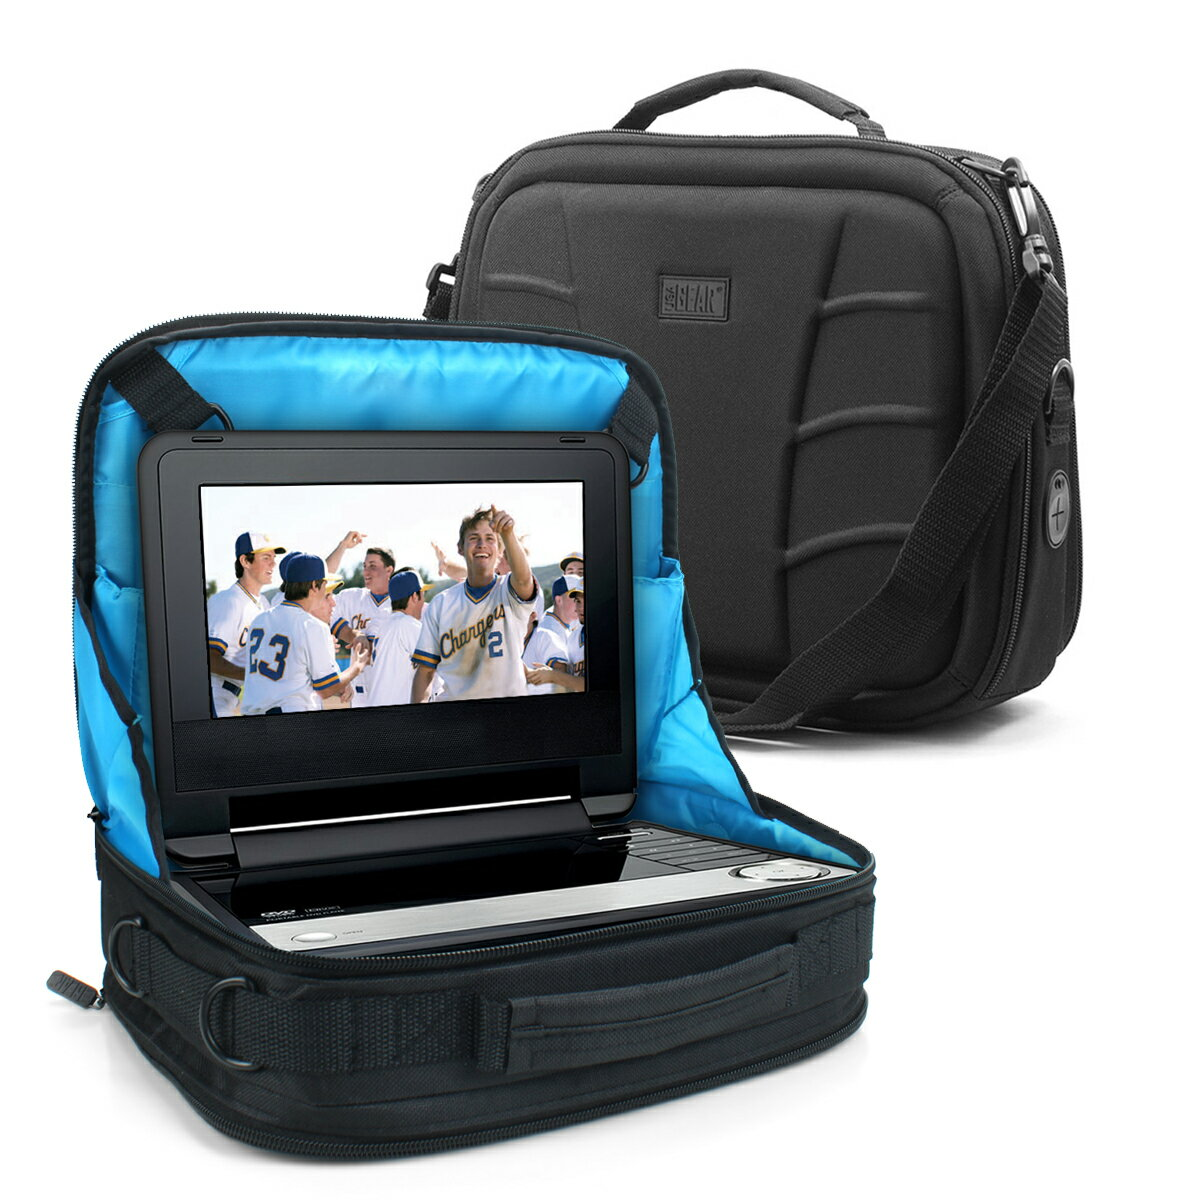 USA GEAR Portable DVD Player Case & Car Headrest Mount with Storage Pockets & Scratch-Free Interior 0